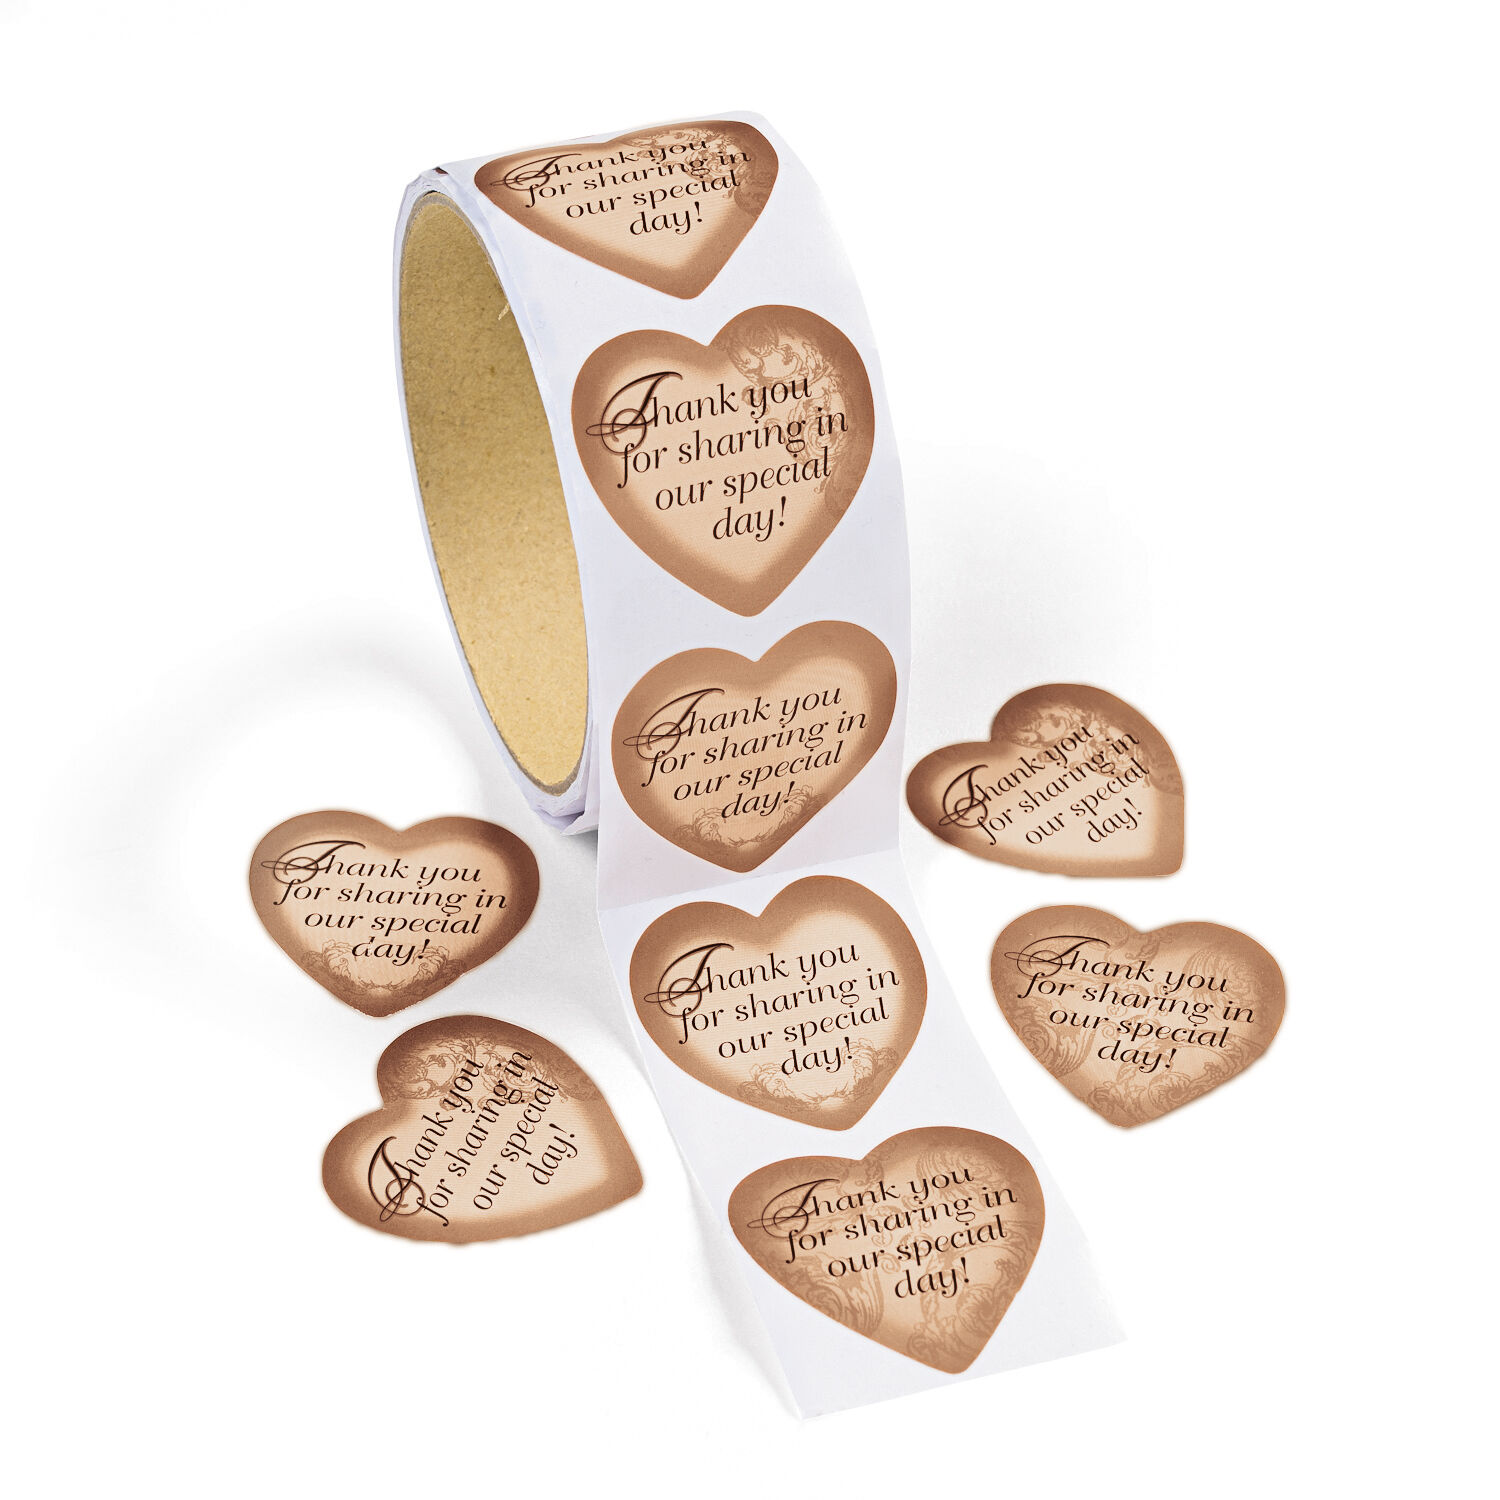 100 gold heart wedding thank you card seal label favor tag